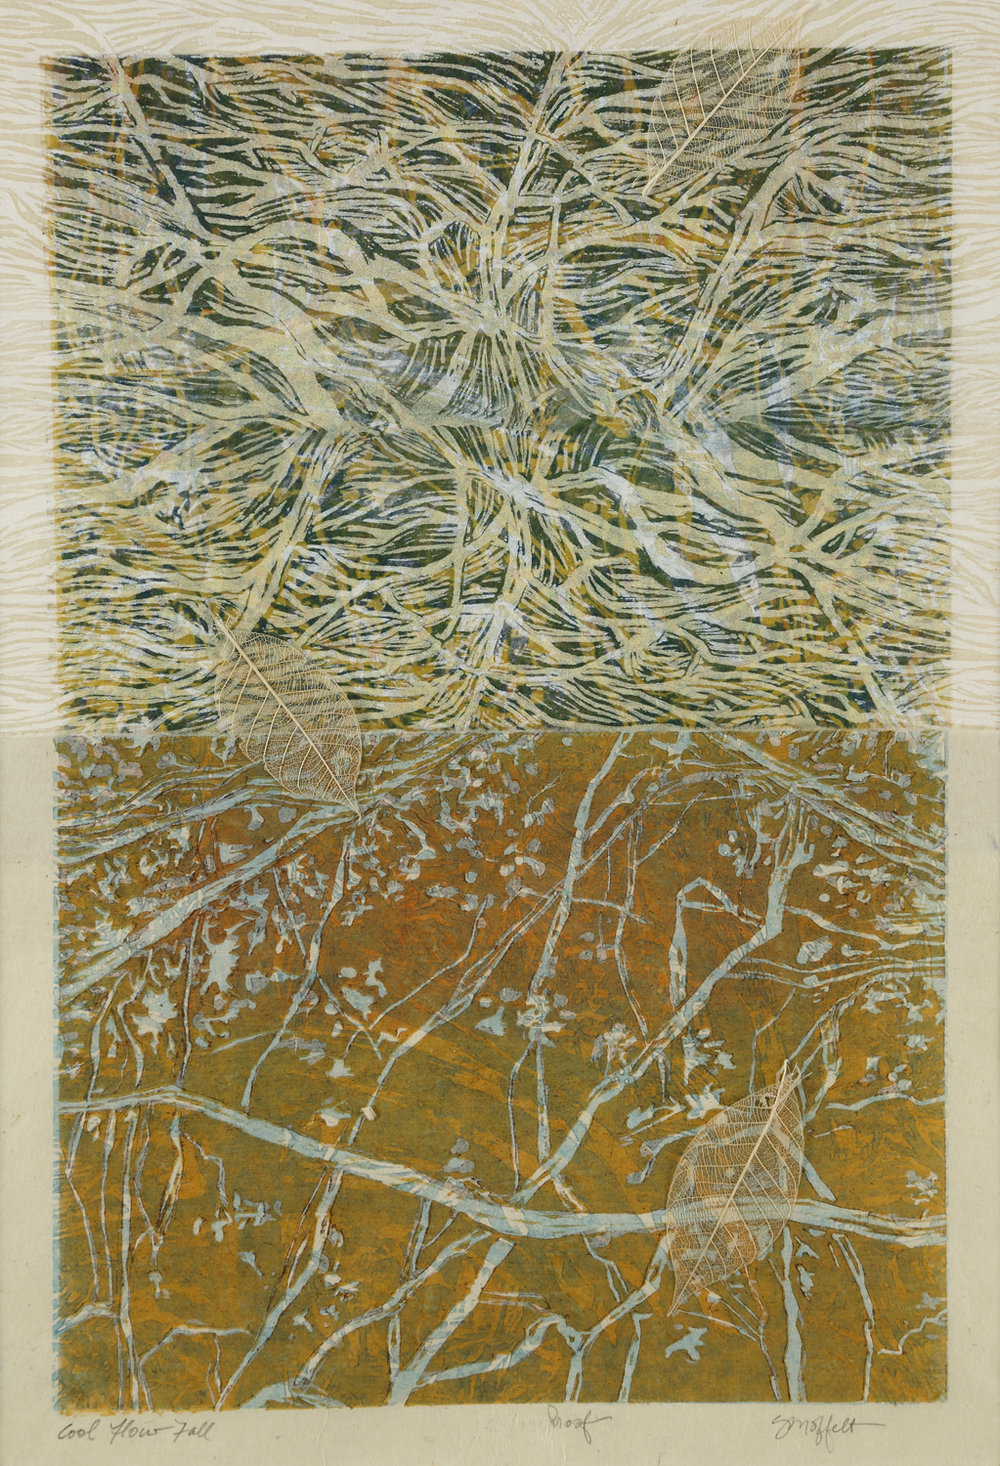 """Cool Flow, Fall"" by Susan Moffett,  Relief Monoprint Collage, 14x20in, 2016"